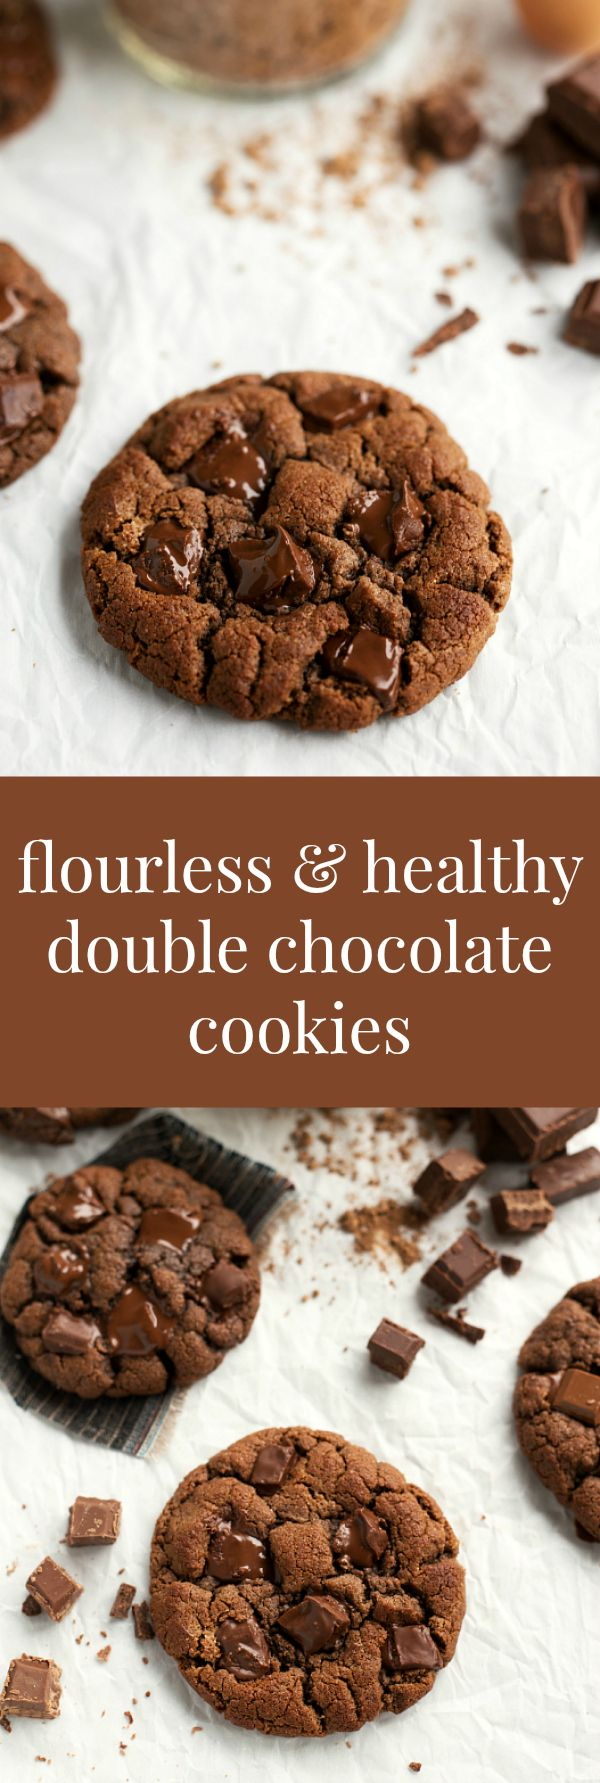 {Flourless & Healthy} Double Chocolate Cookies | Chelsea's Messy Apron